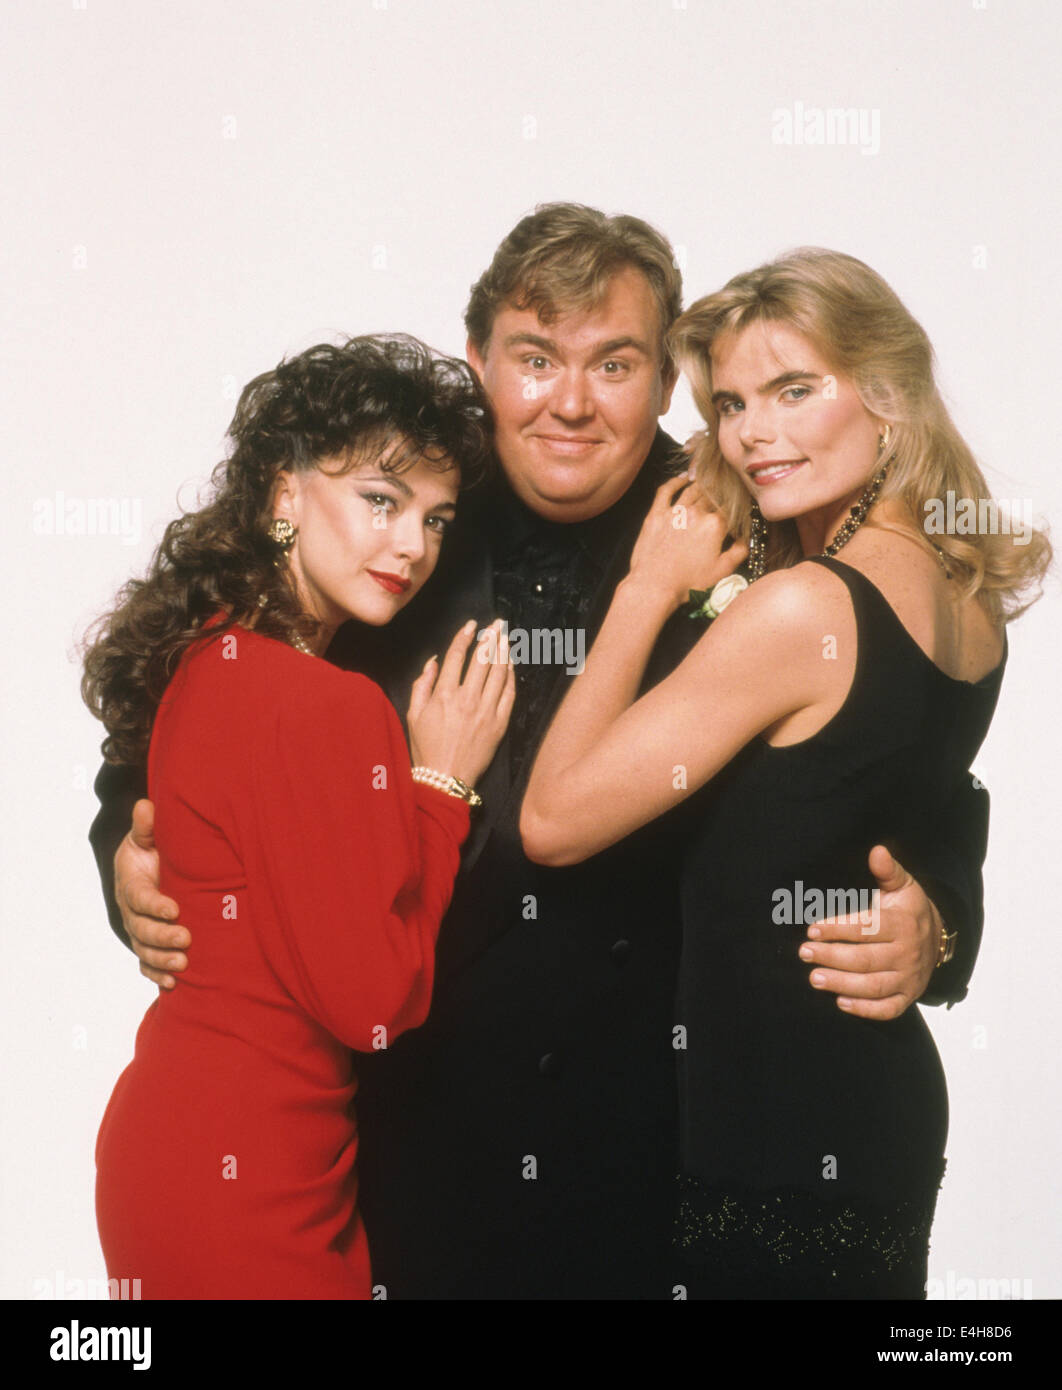 DELIRIOUS 1991 MGM film with from left: Emma Samms, John Candy and Mariel Hemingway Stock Photo